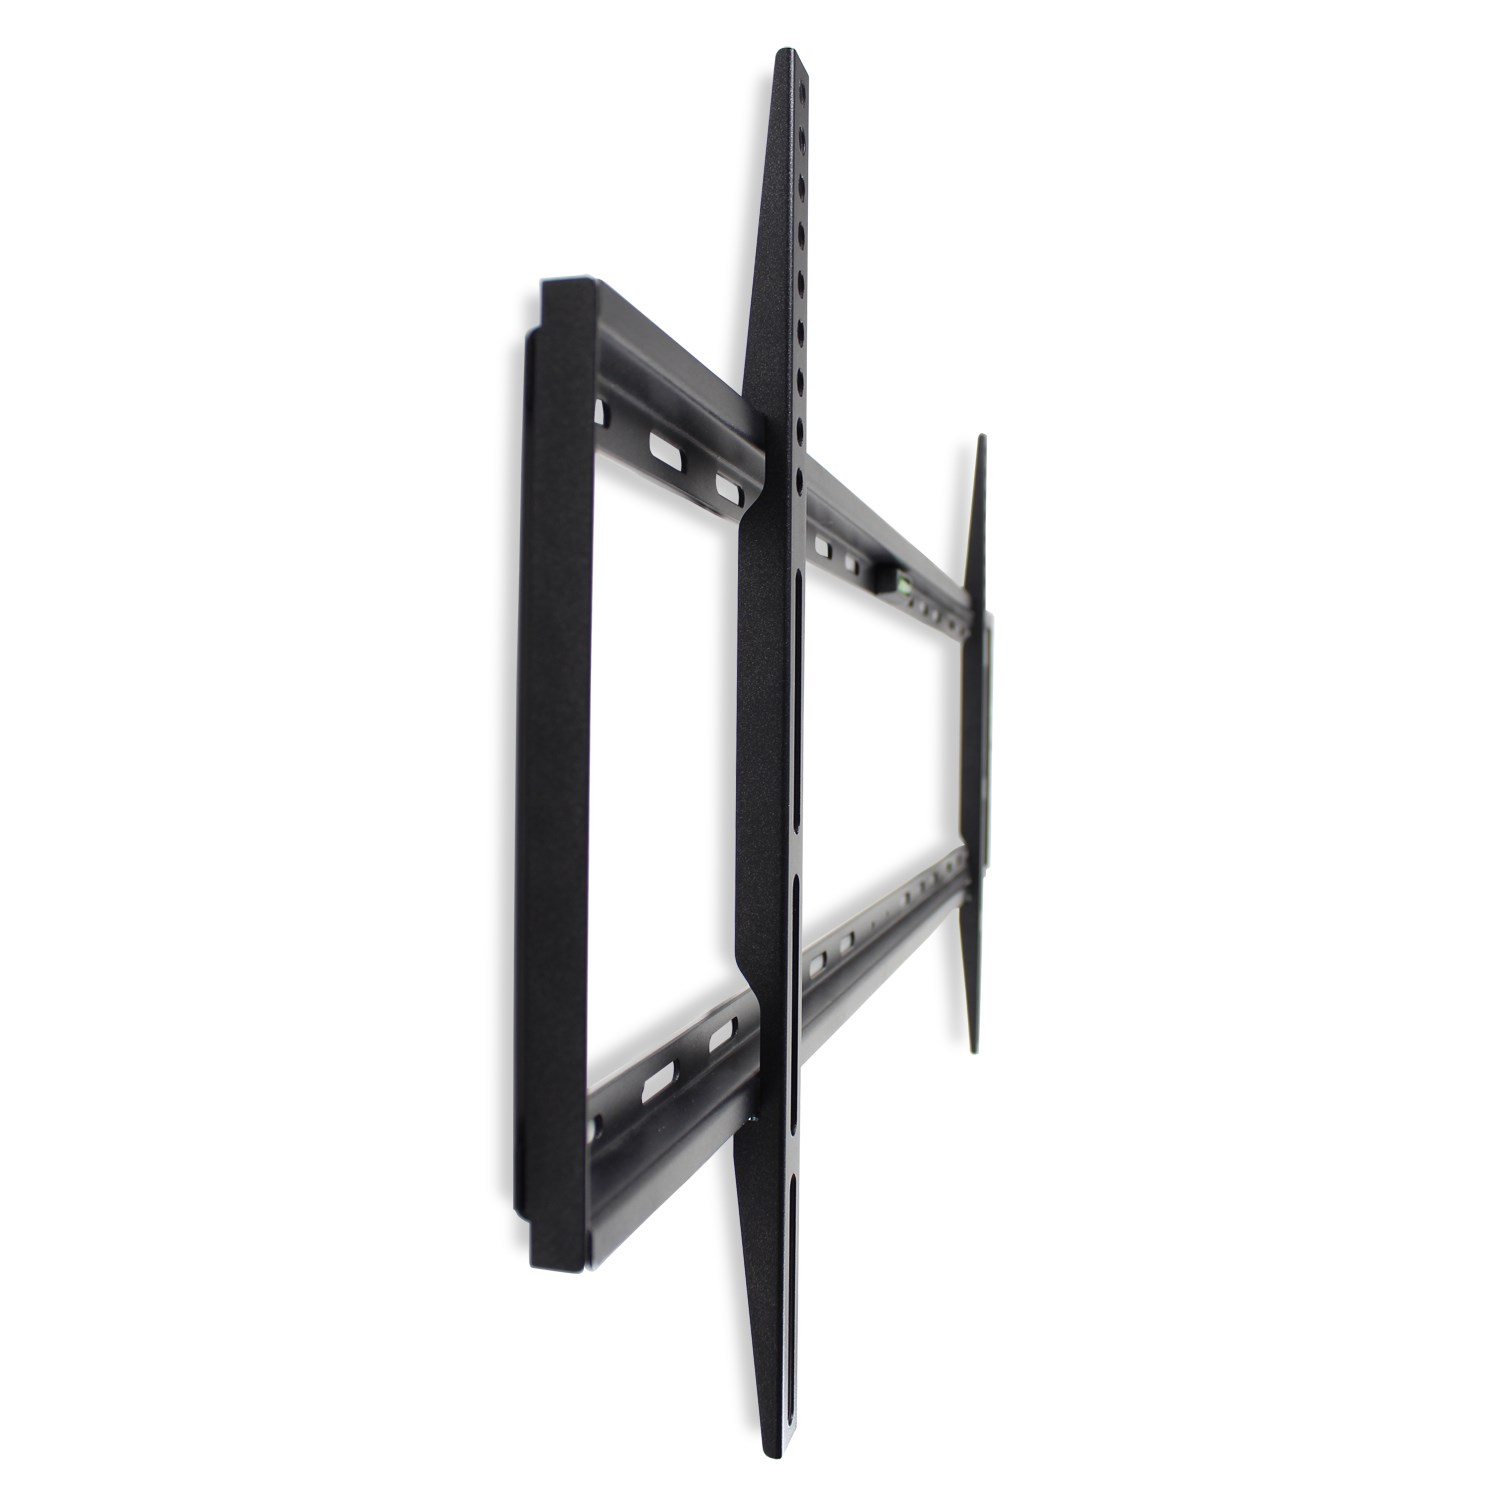 super slim flat tv wall mount bracket 65 70 75 80 85 90 100 inch tvs ebay. Black Bedroom Furniture Sets. Home Design Ideas